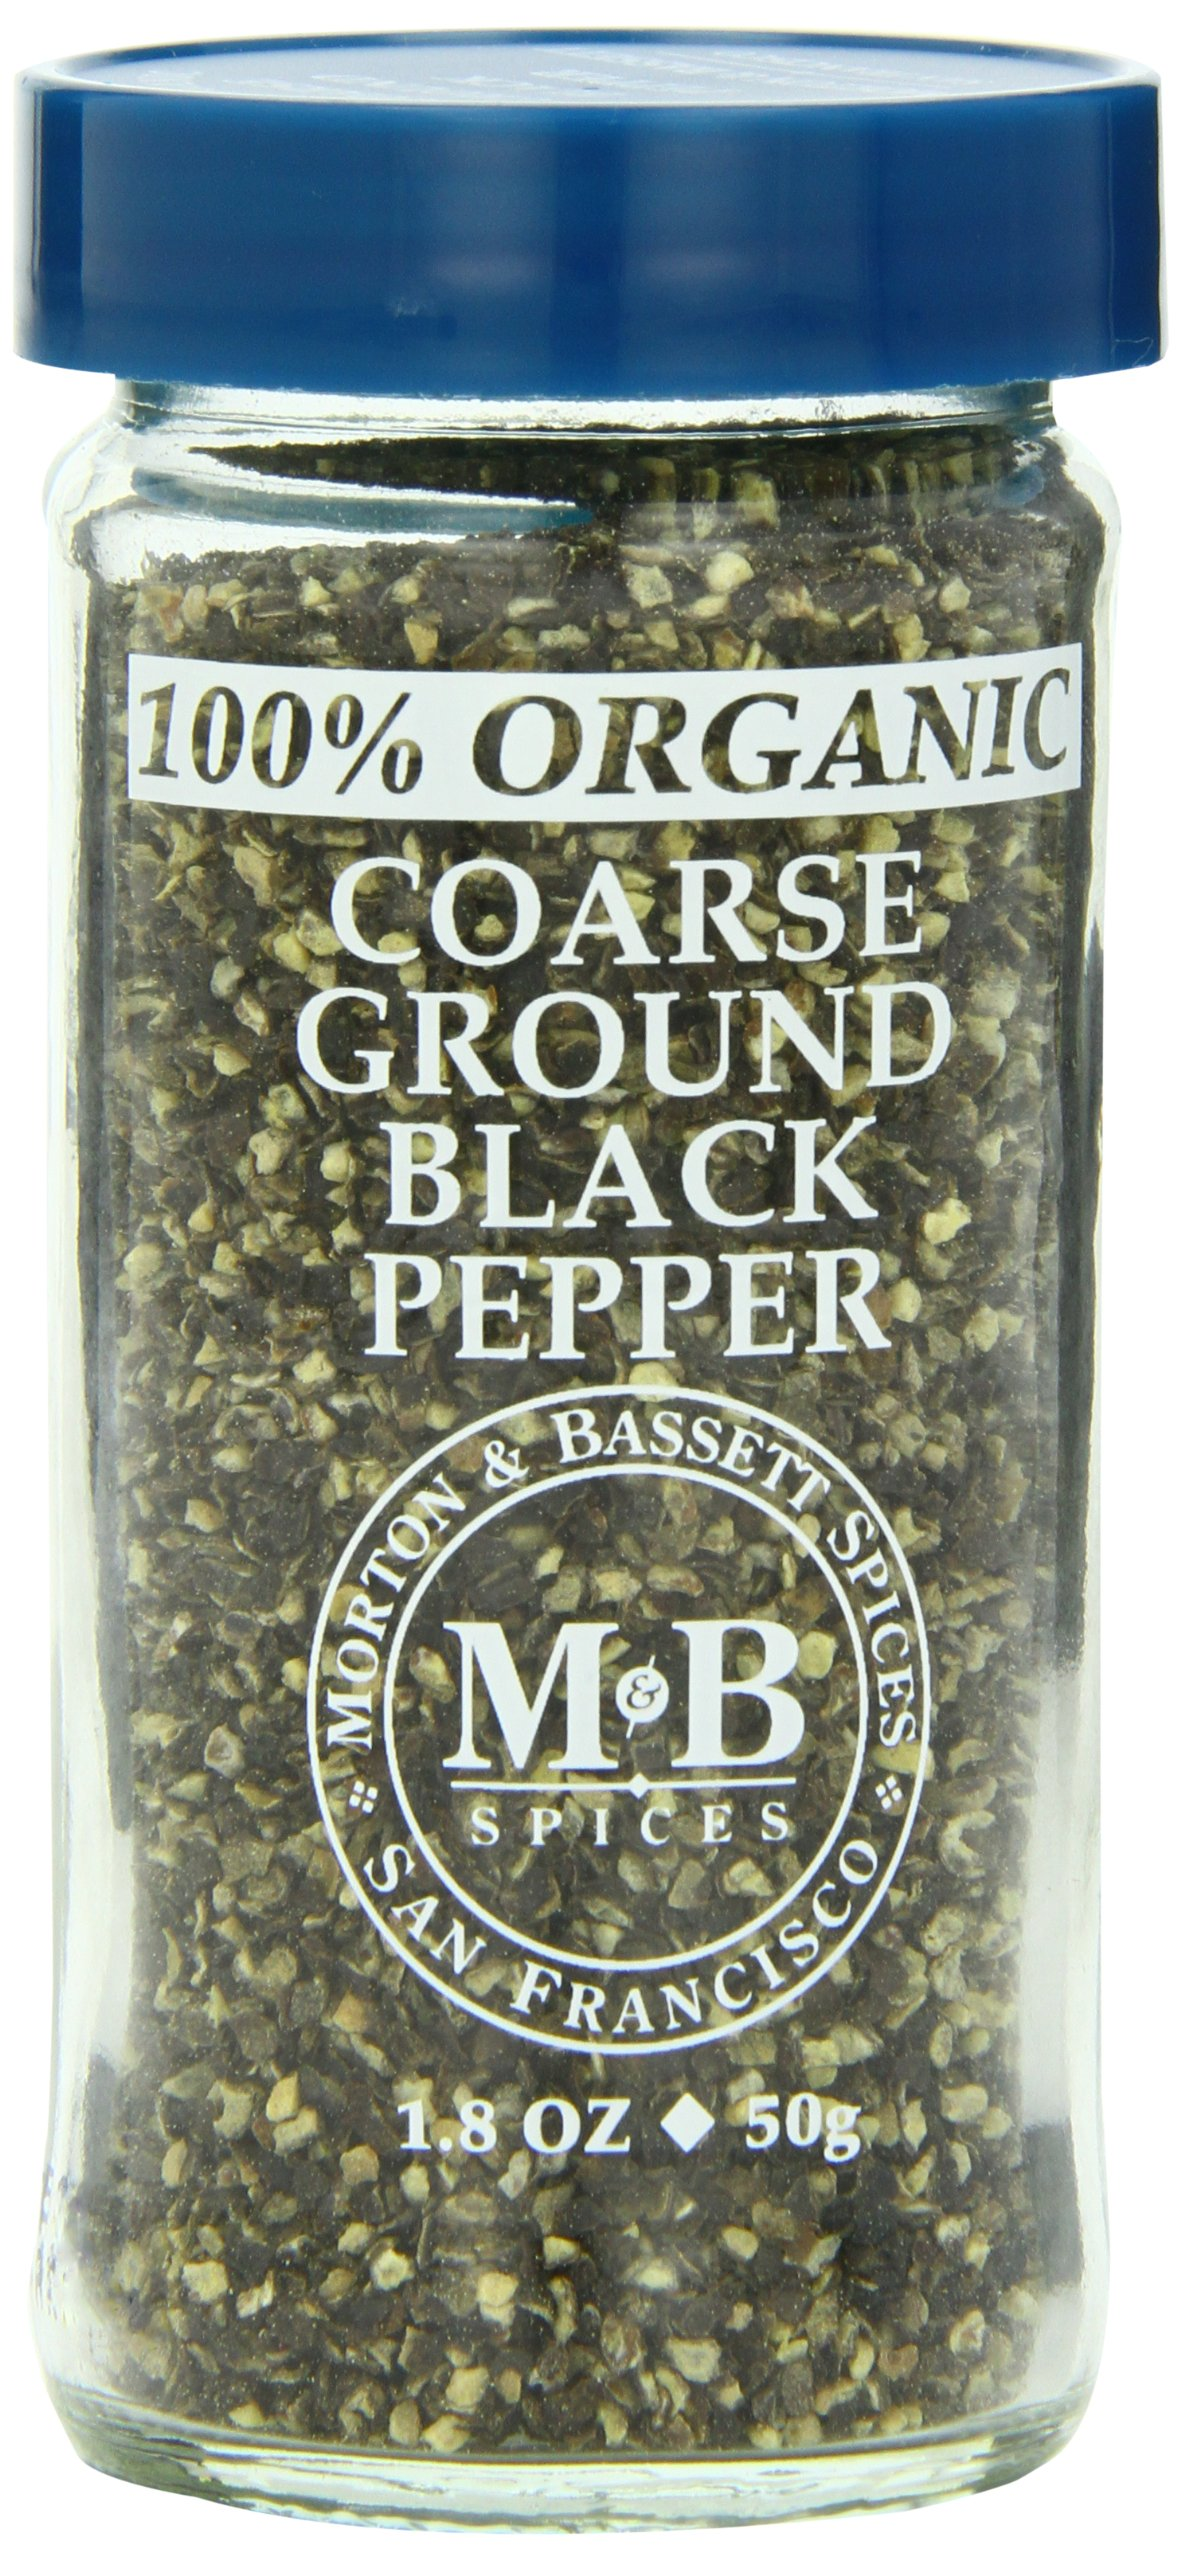 Morton & Basset Spices, Organic Coarse Ground Black Pepper, 1.8 Ounce (Pack of 3)